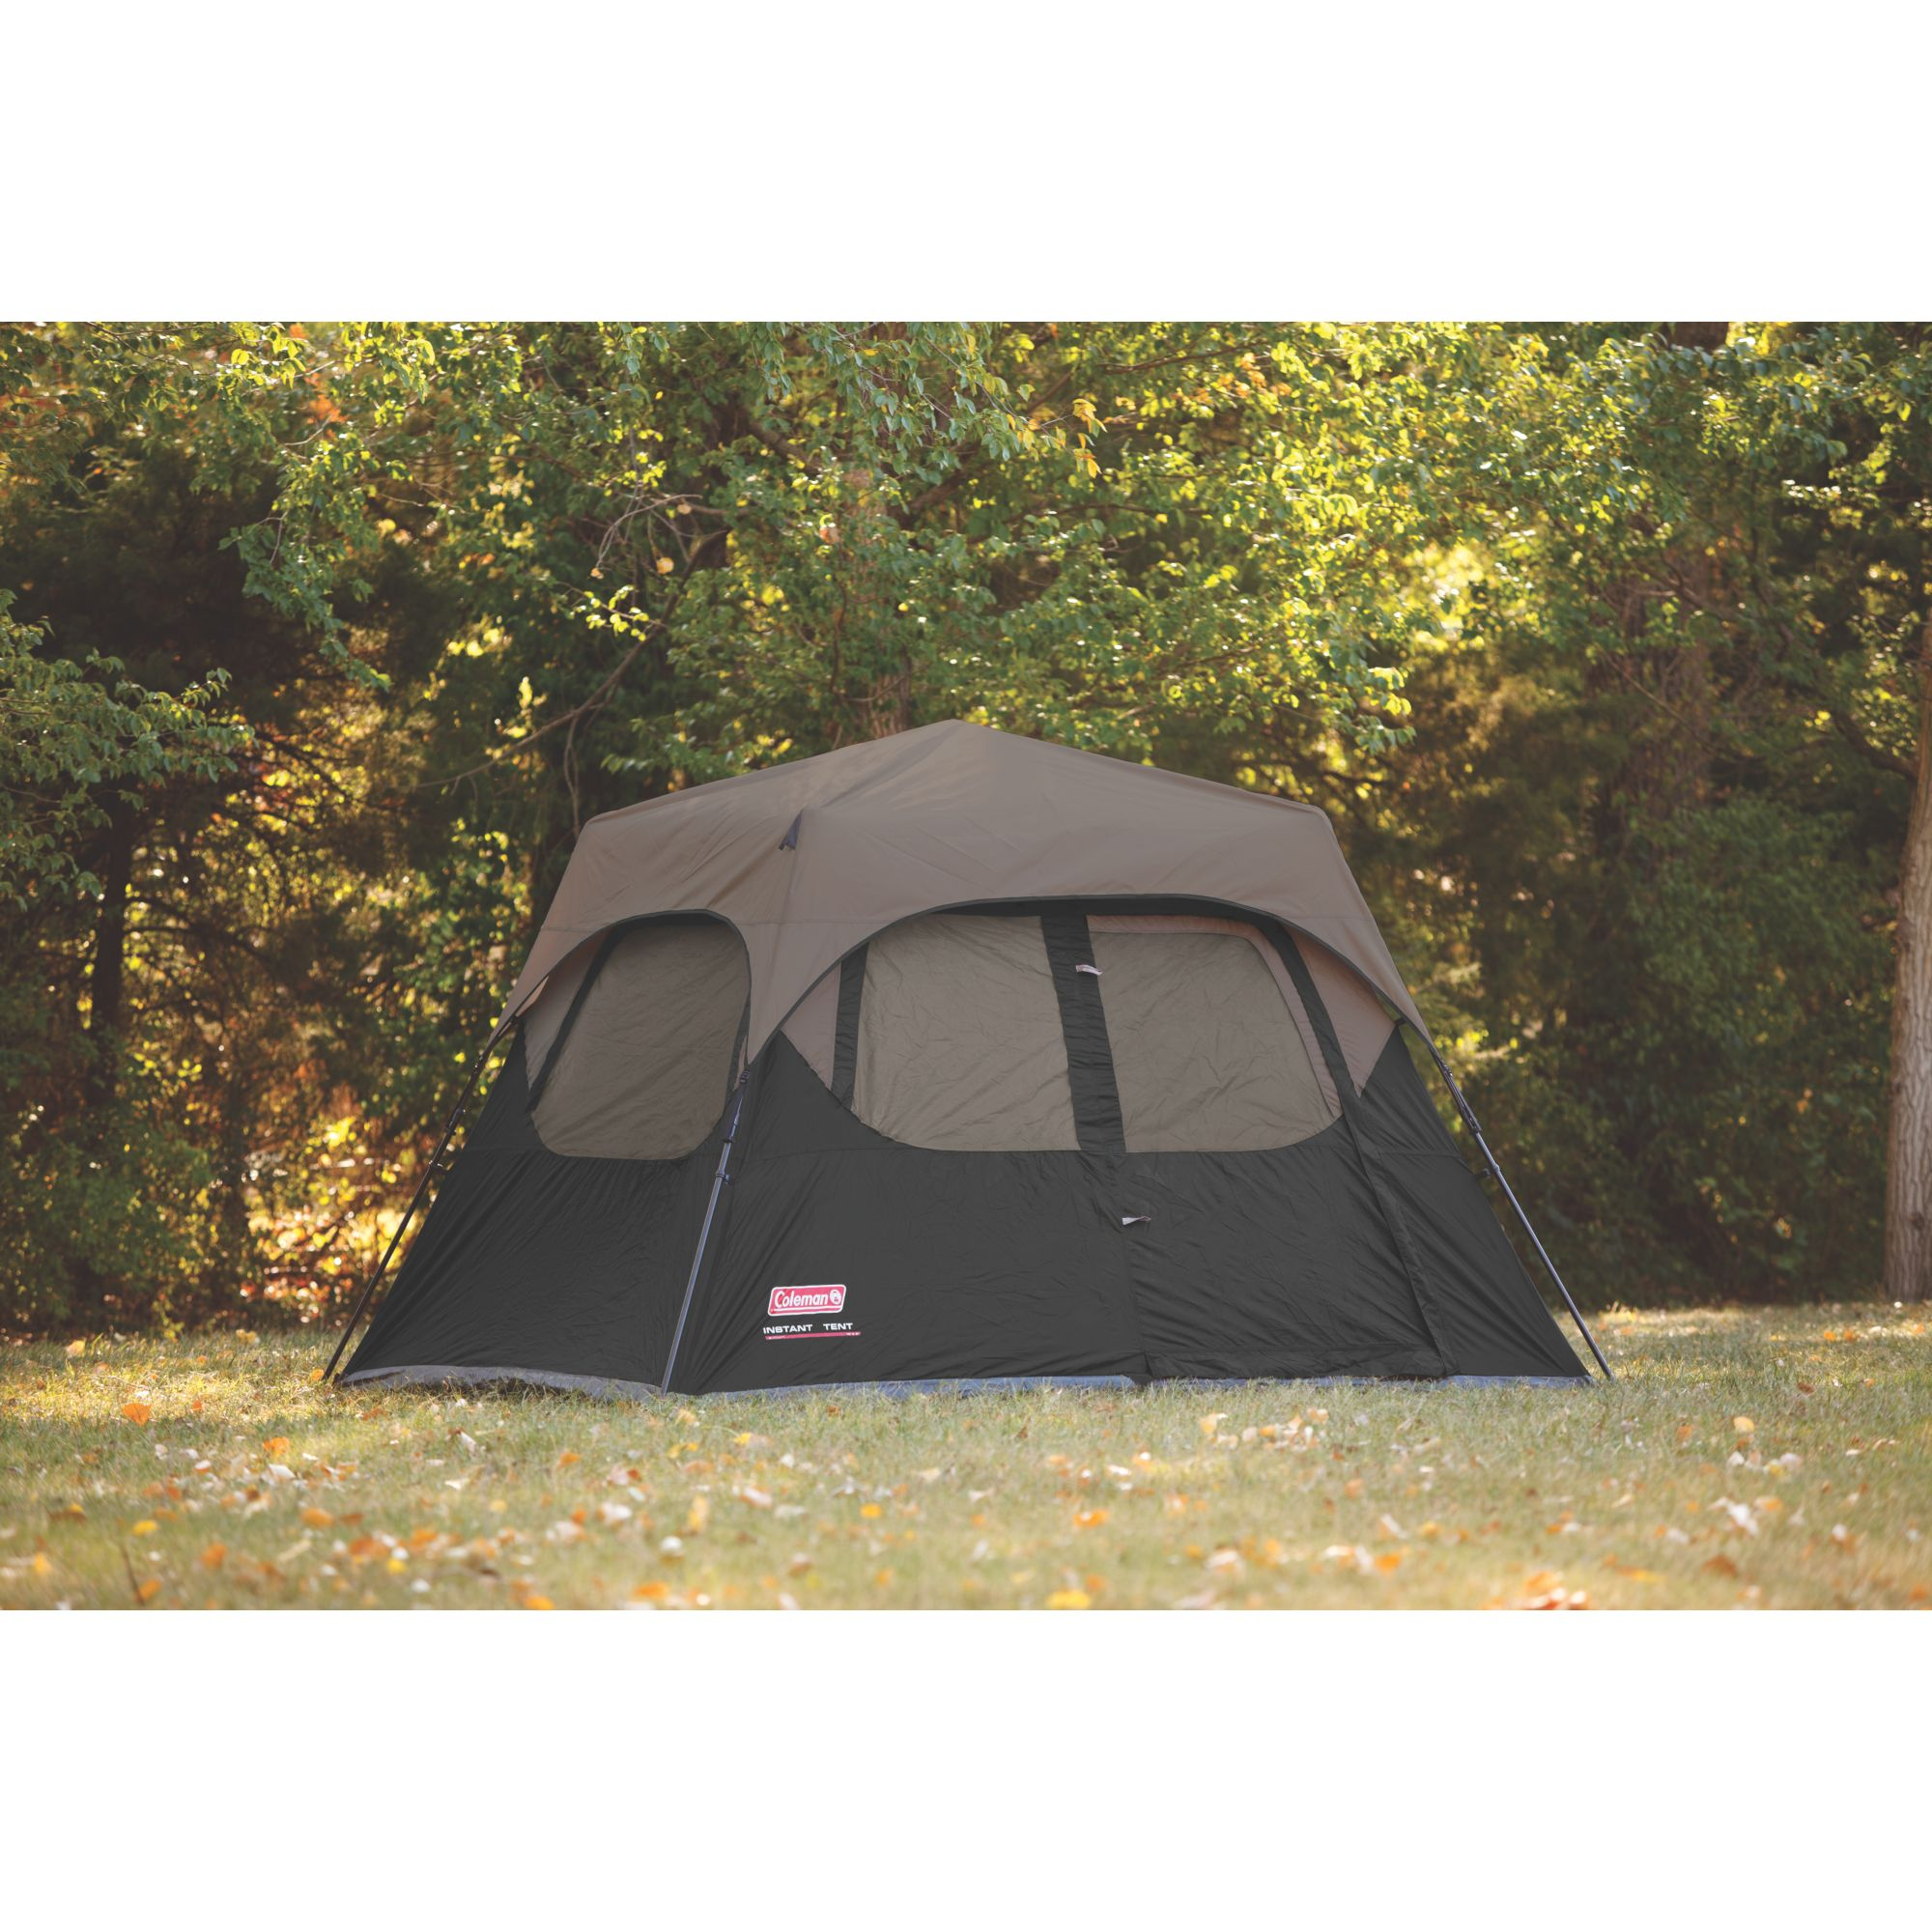 Coleman rainfly coleman tent parts coleman 6 person instant tent rainfly accessory sciox Choice Image